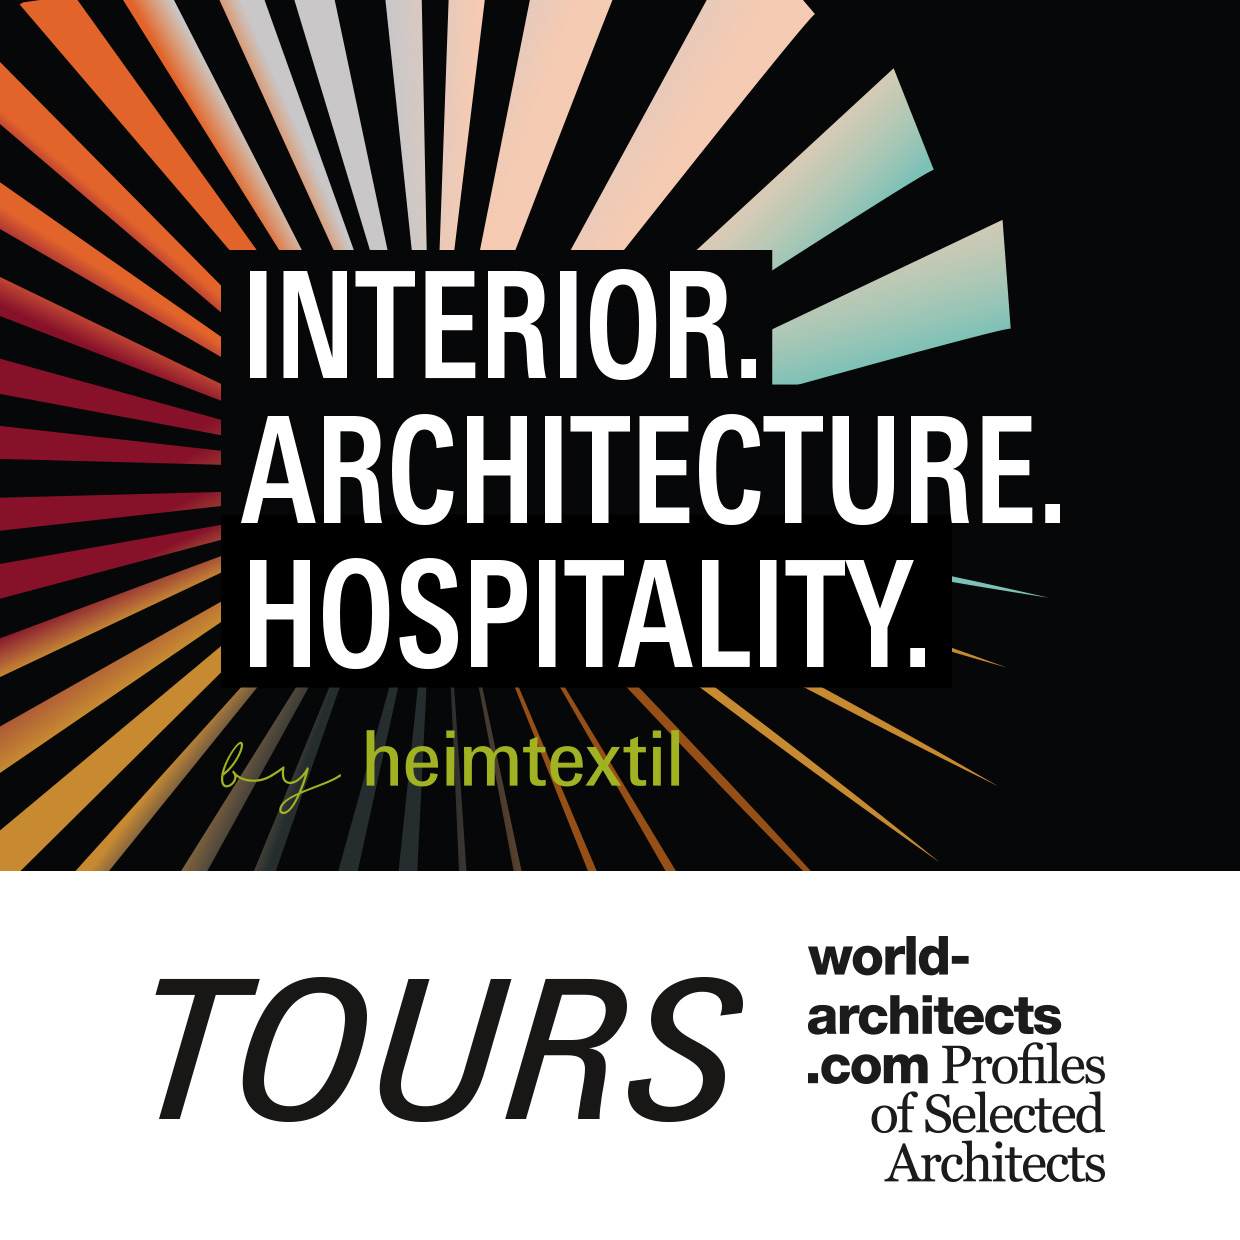 guided-tour-by-world-architects7